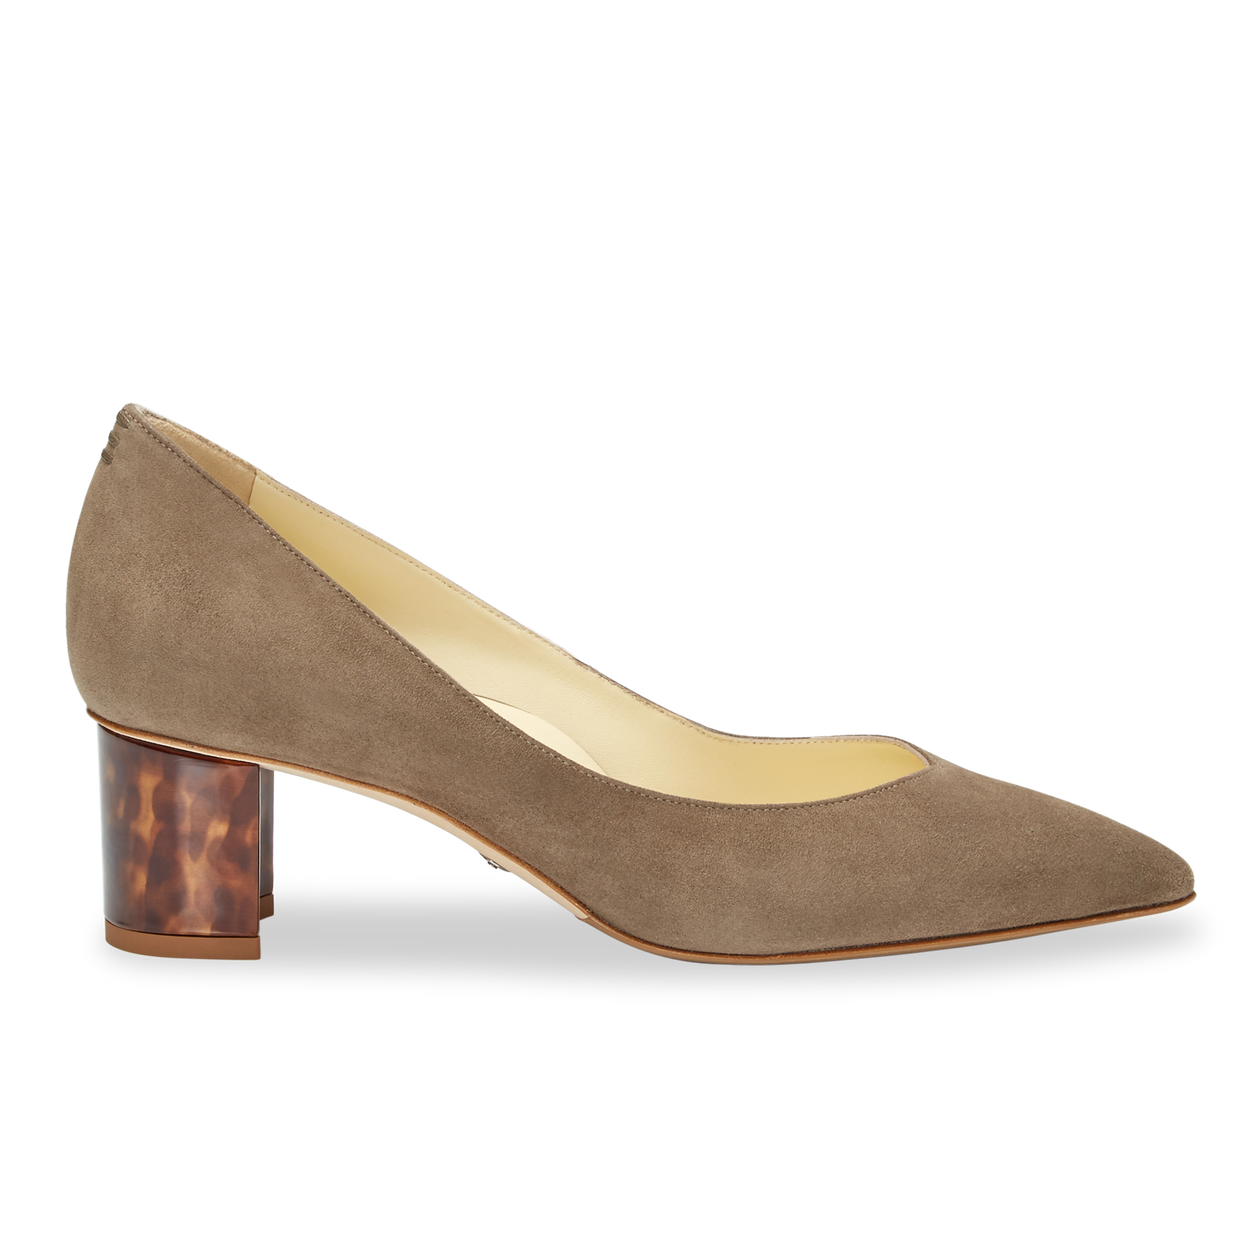 Perfect Emma   Taupe Suede   Sarah Flint